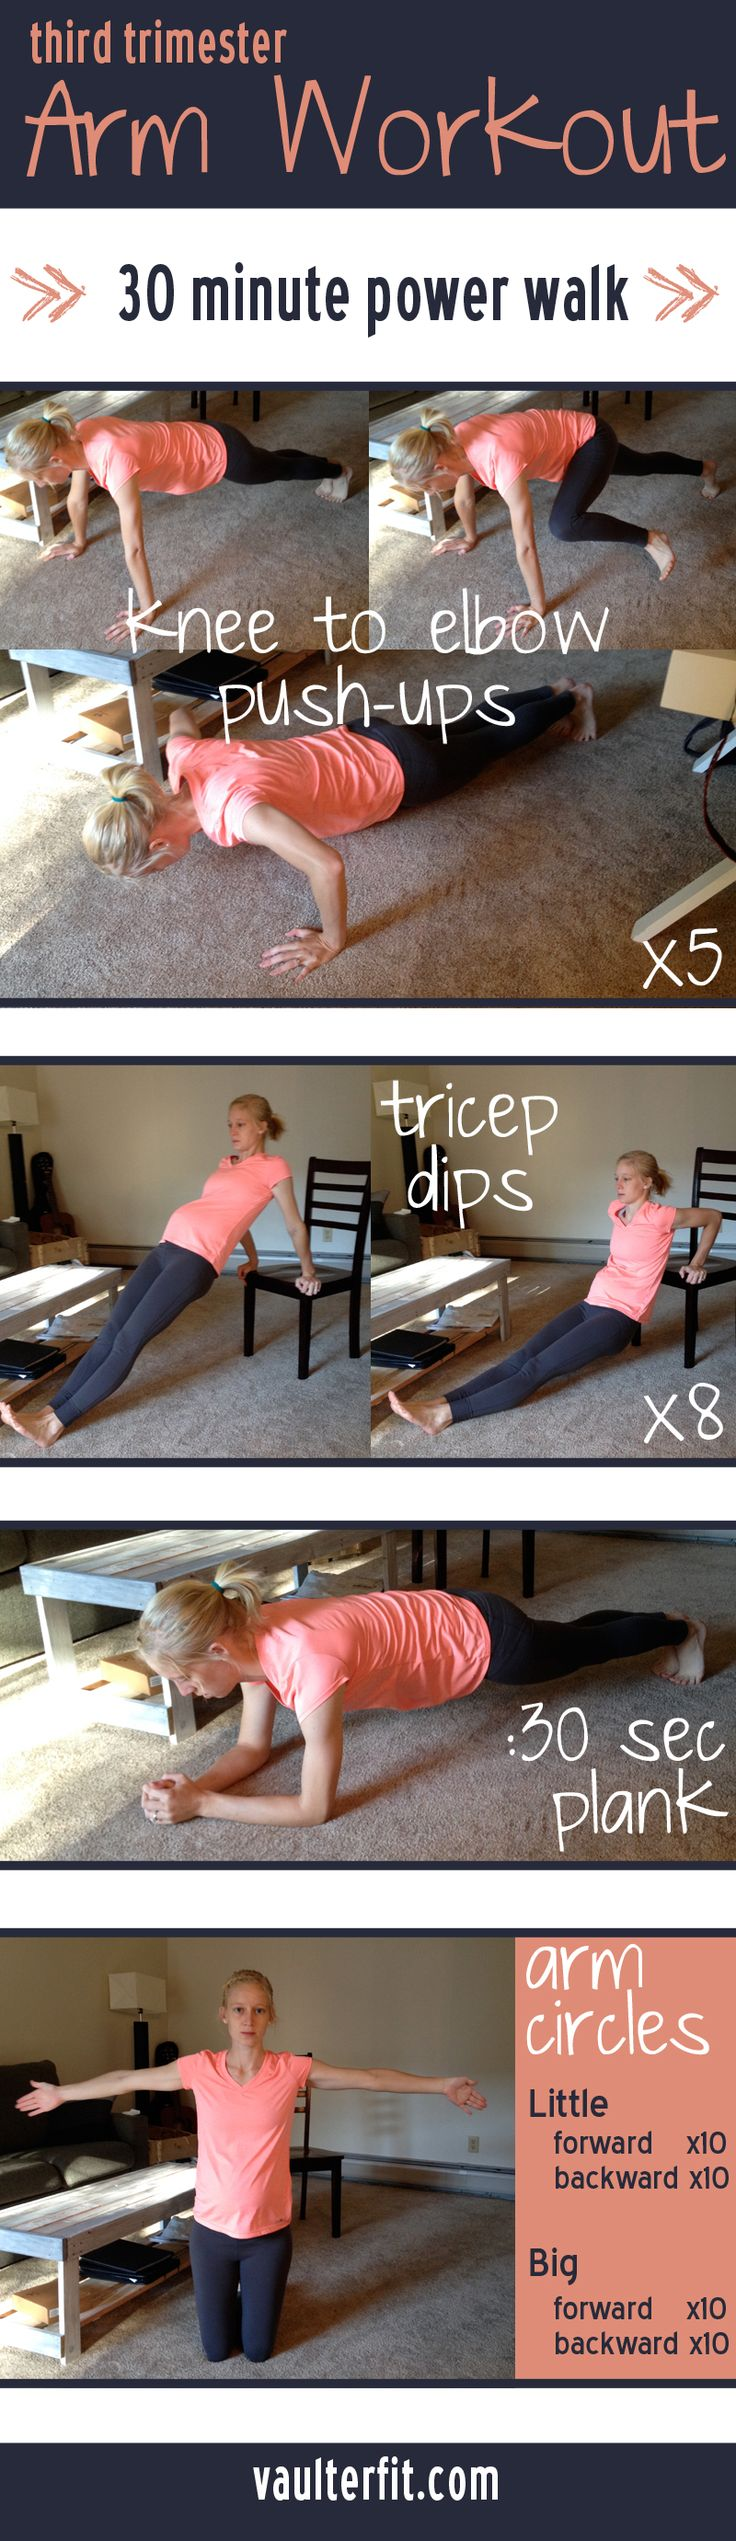 Exercise during pregnancy is important! Get your arms ready for that new baby with this third trimester arm workout from Vaulter Fit!